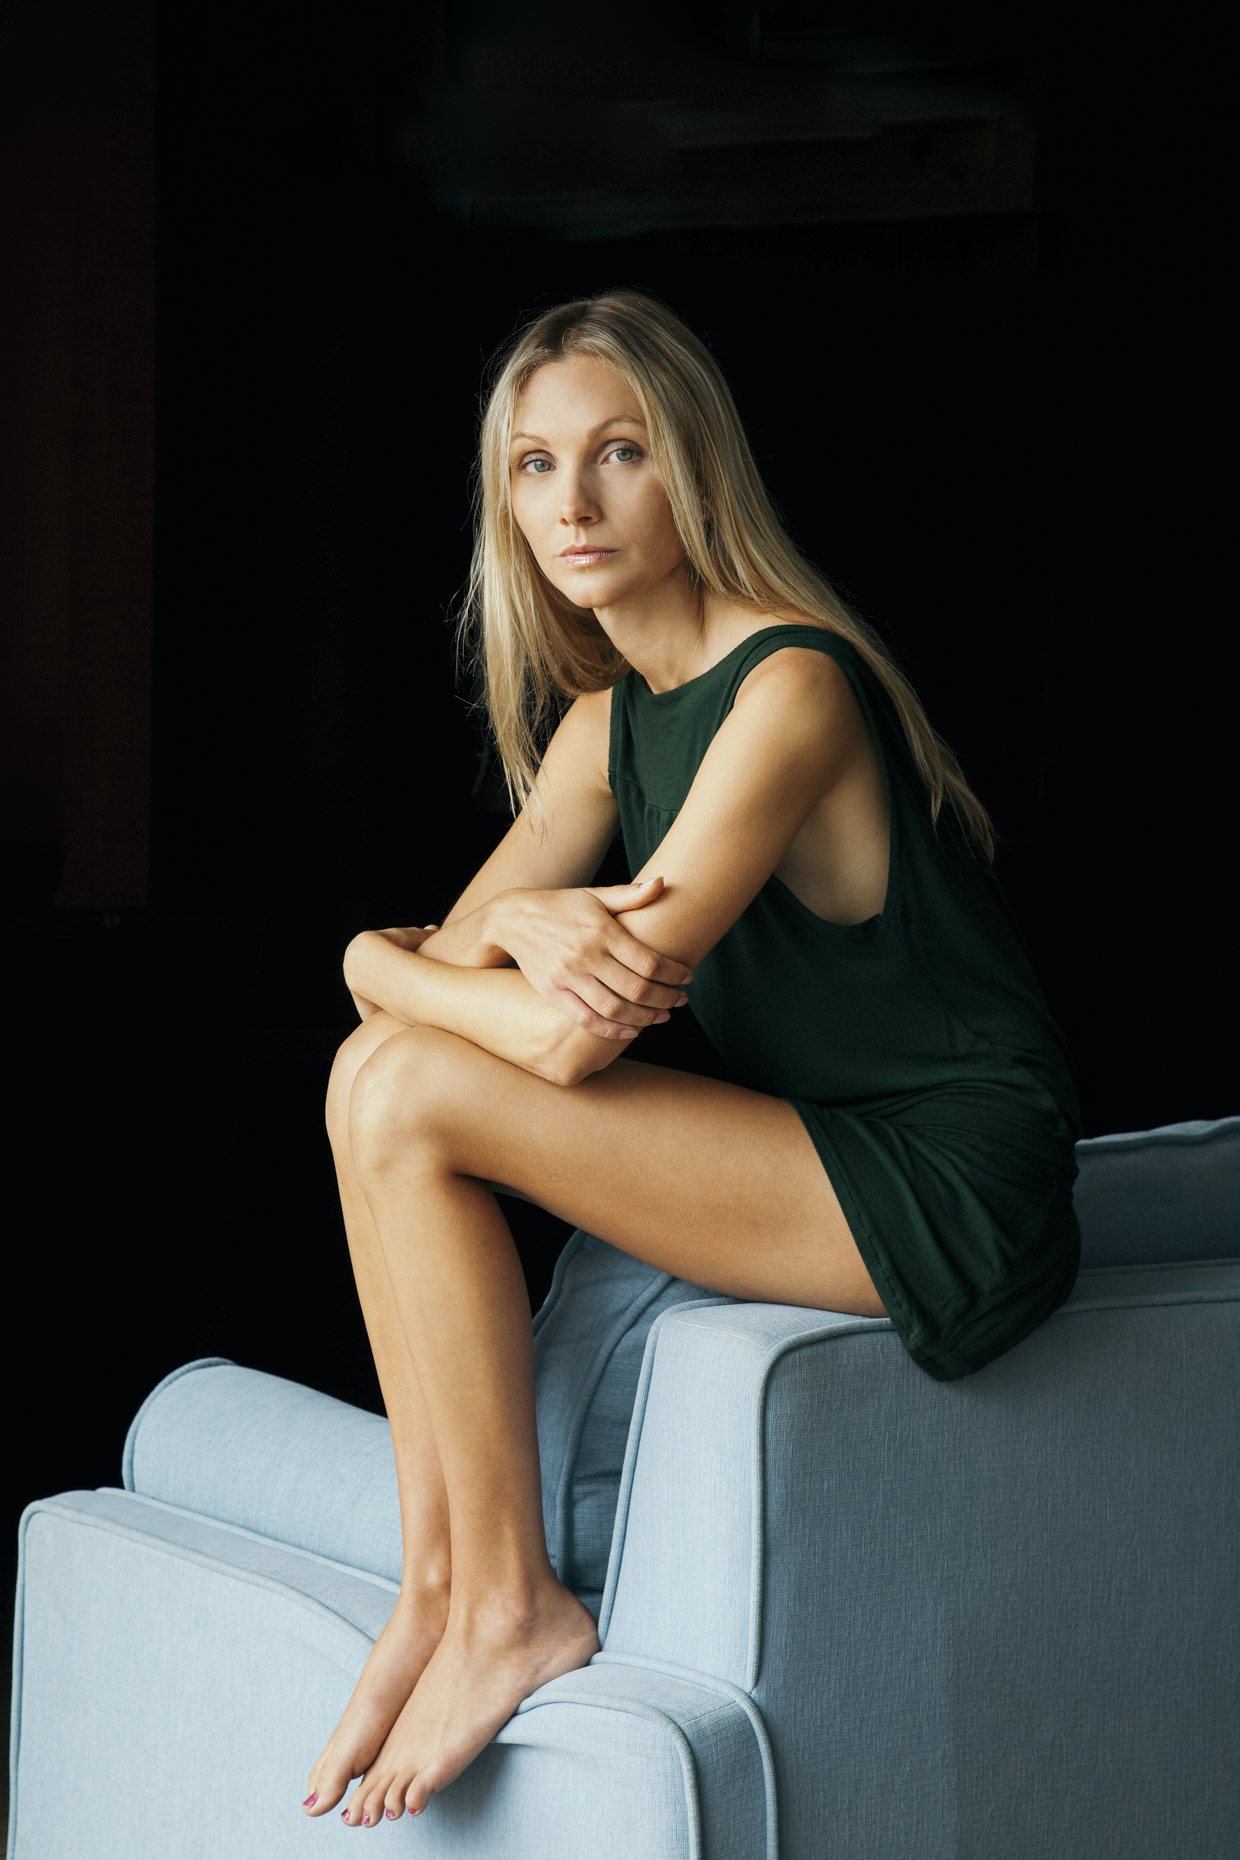 Portrait of blonde woman sitting on edge of couch